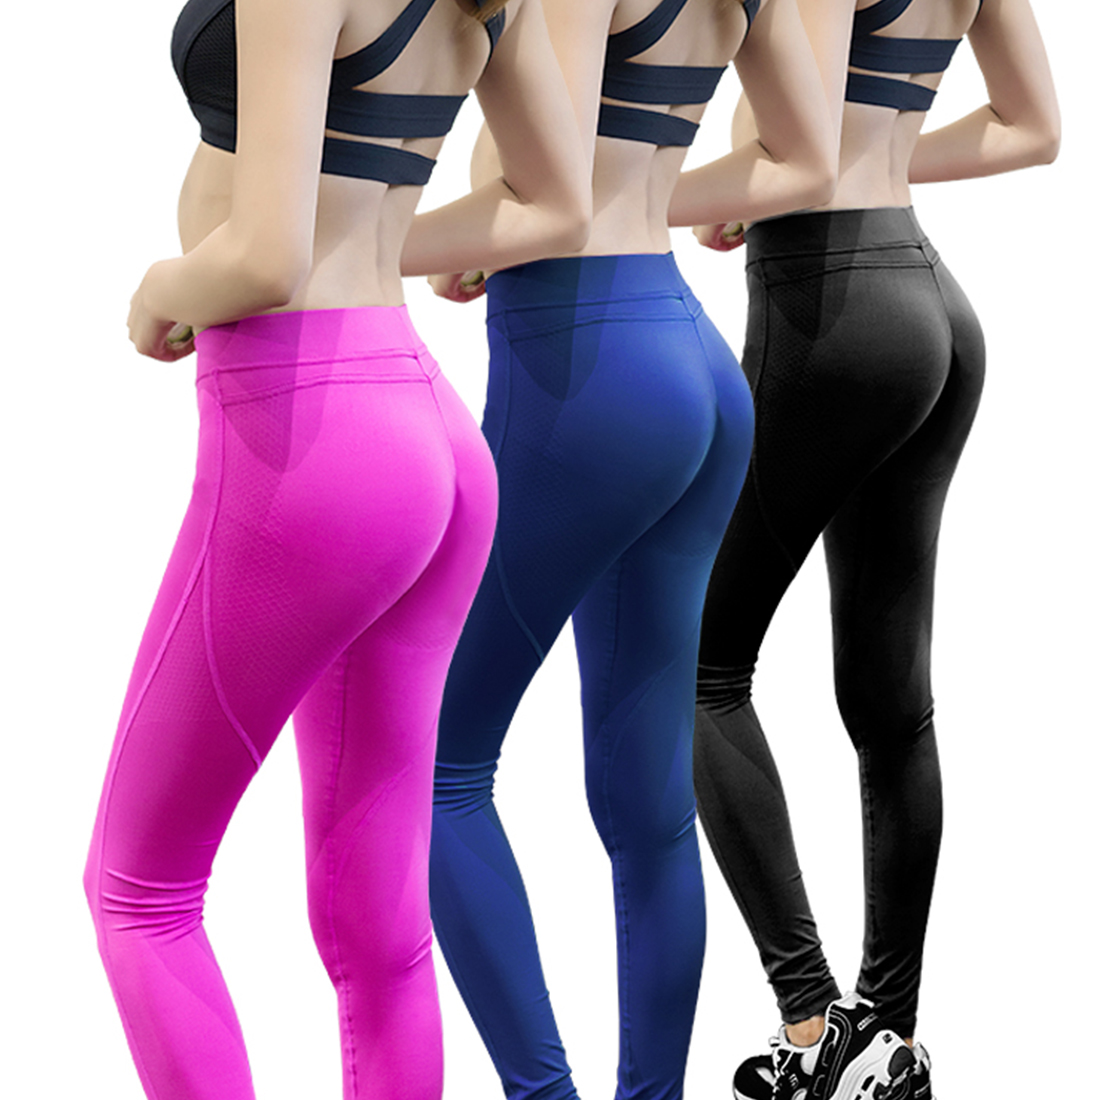 NEW Sex low Waist Stretched Sports Pants Gym Clothes Running Tights Women Sports Leggings Fitness Yoga Pants 3 Colors